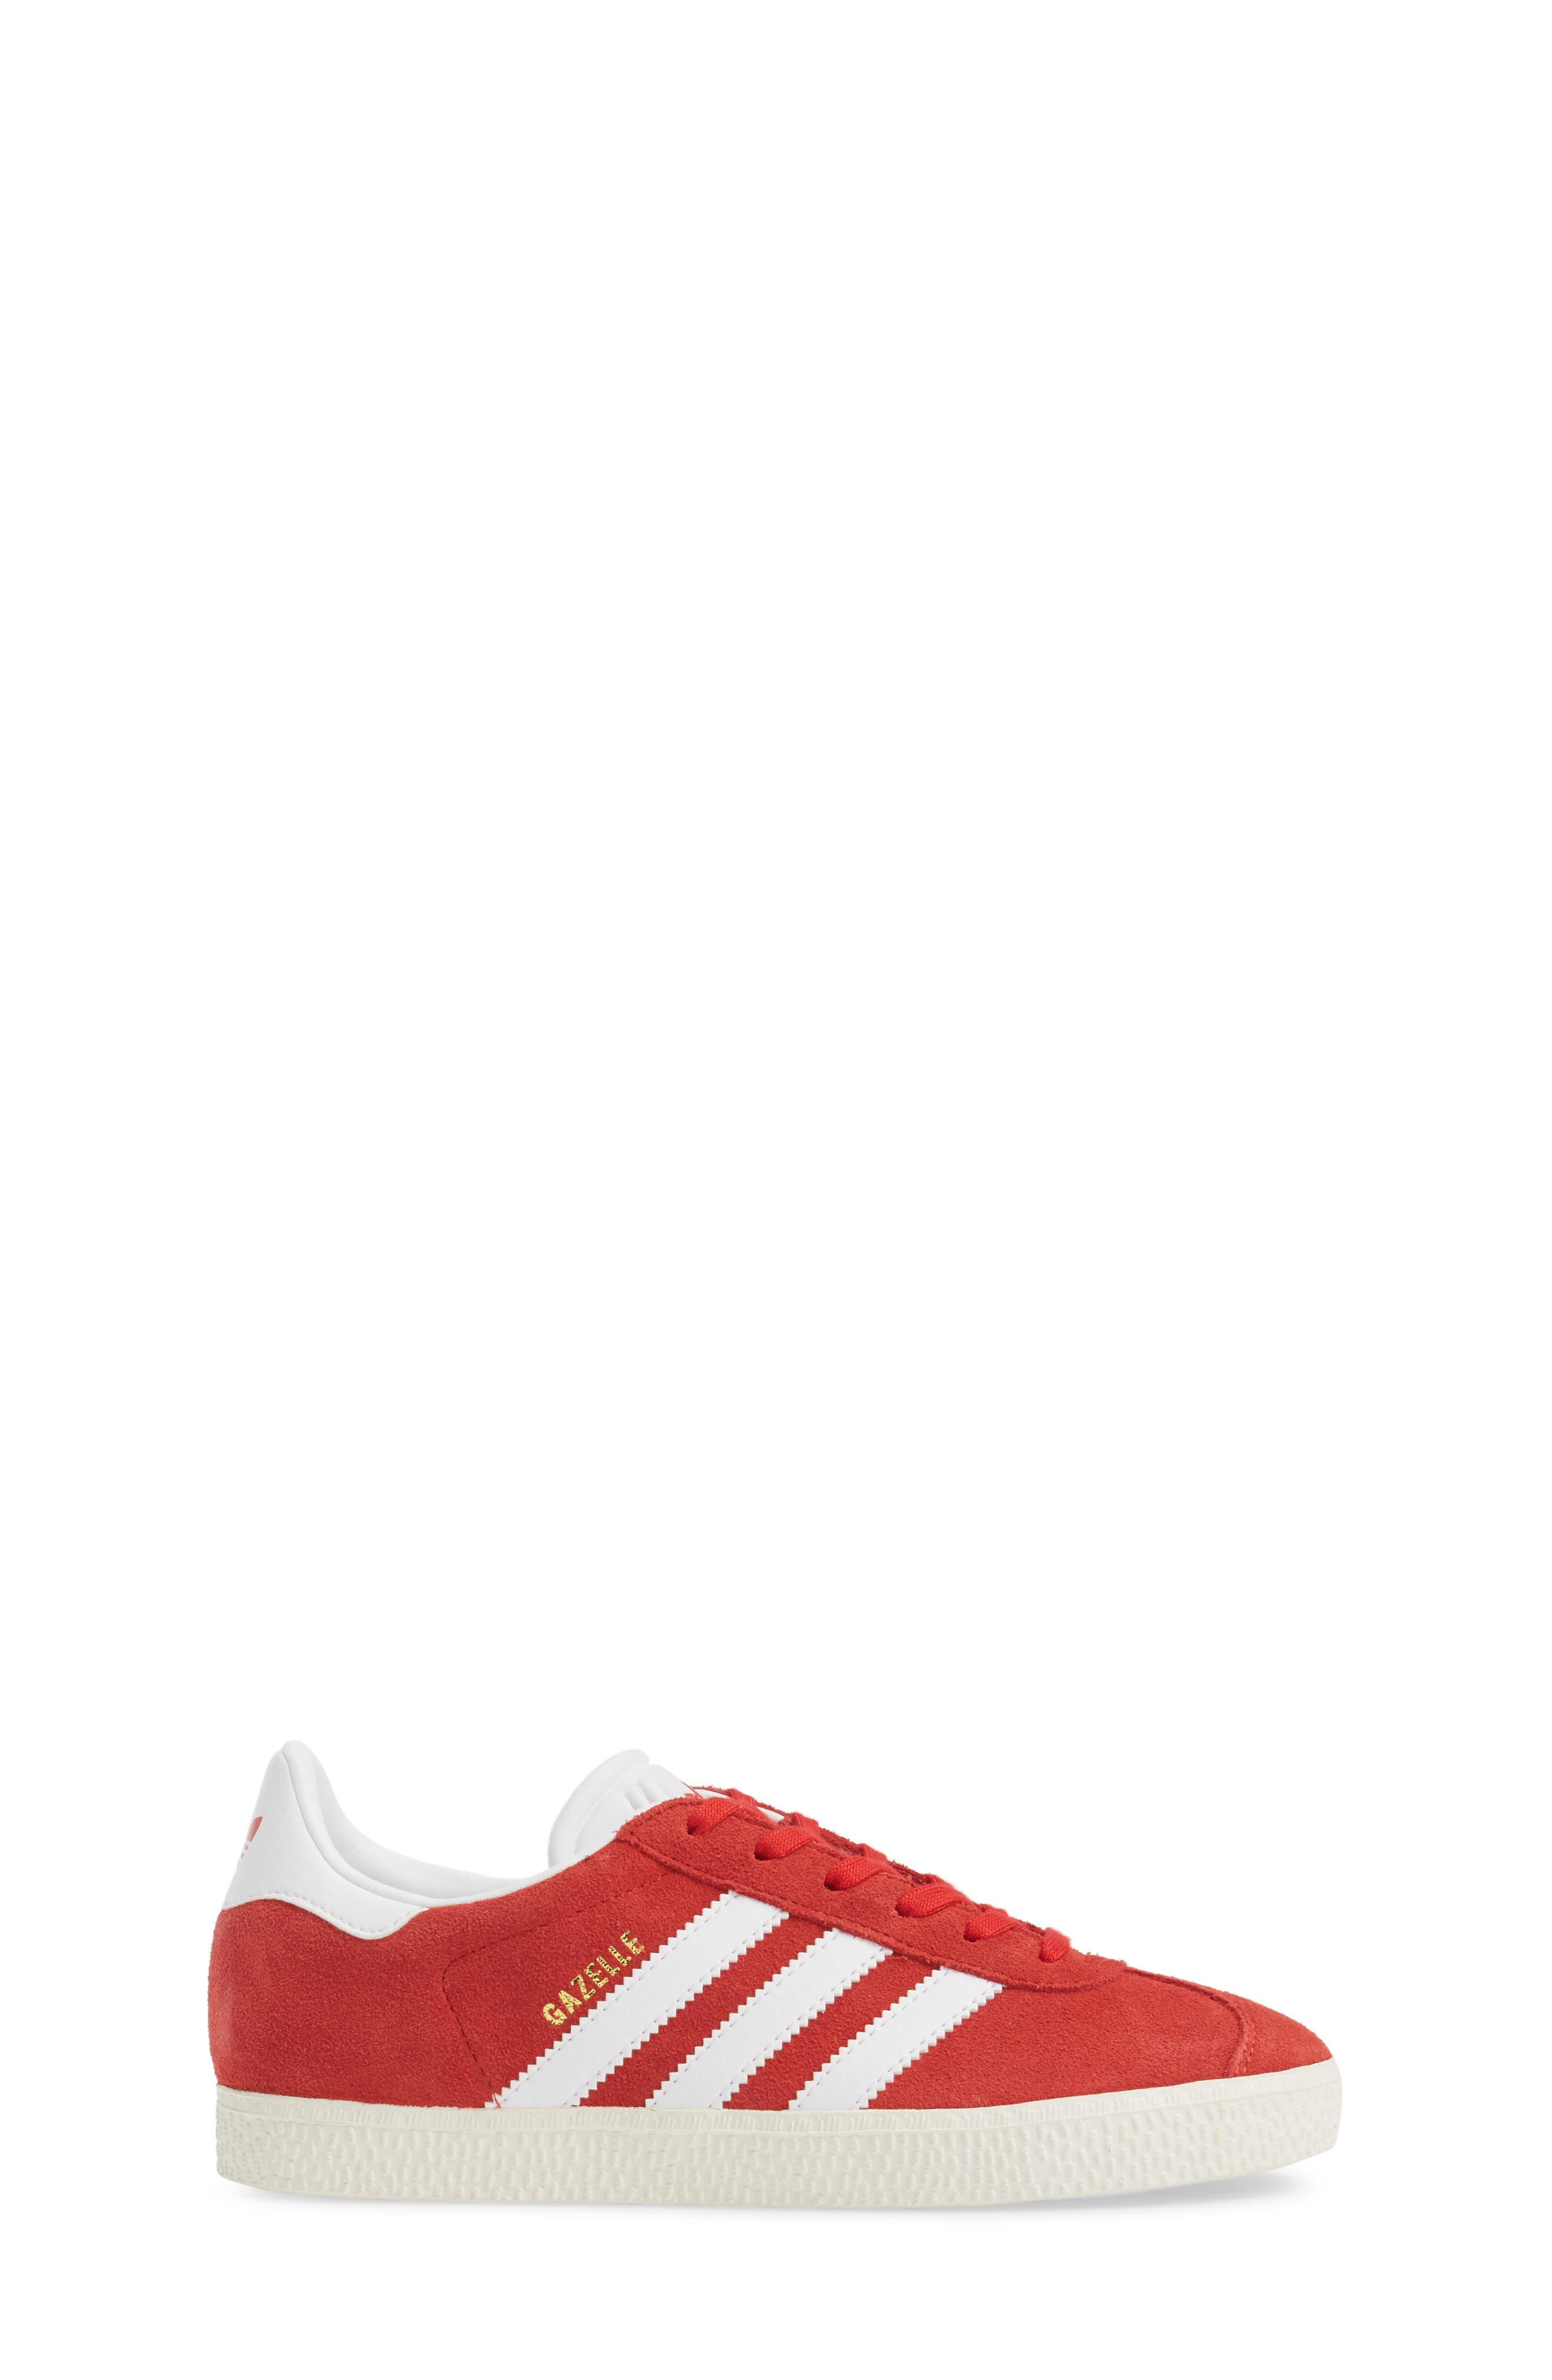 Alternate Image 3  - adidas Gazelle Sneaker (Big Kid)